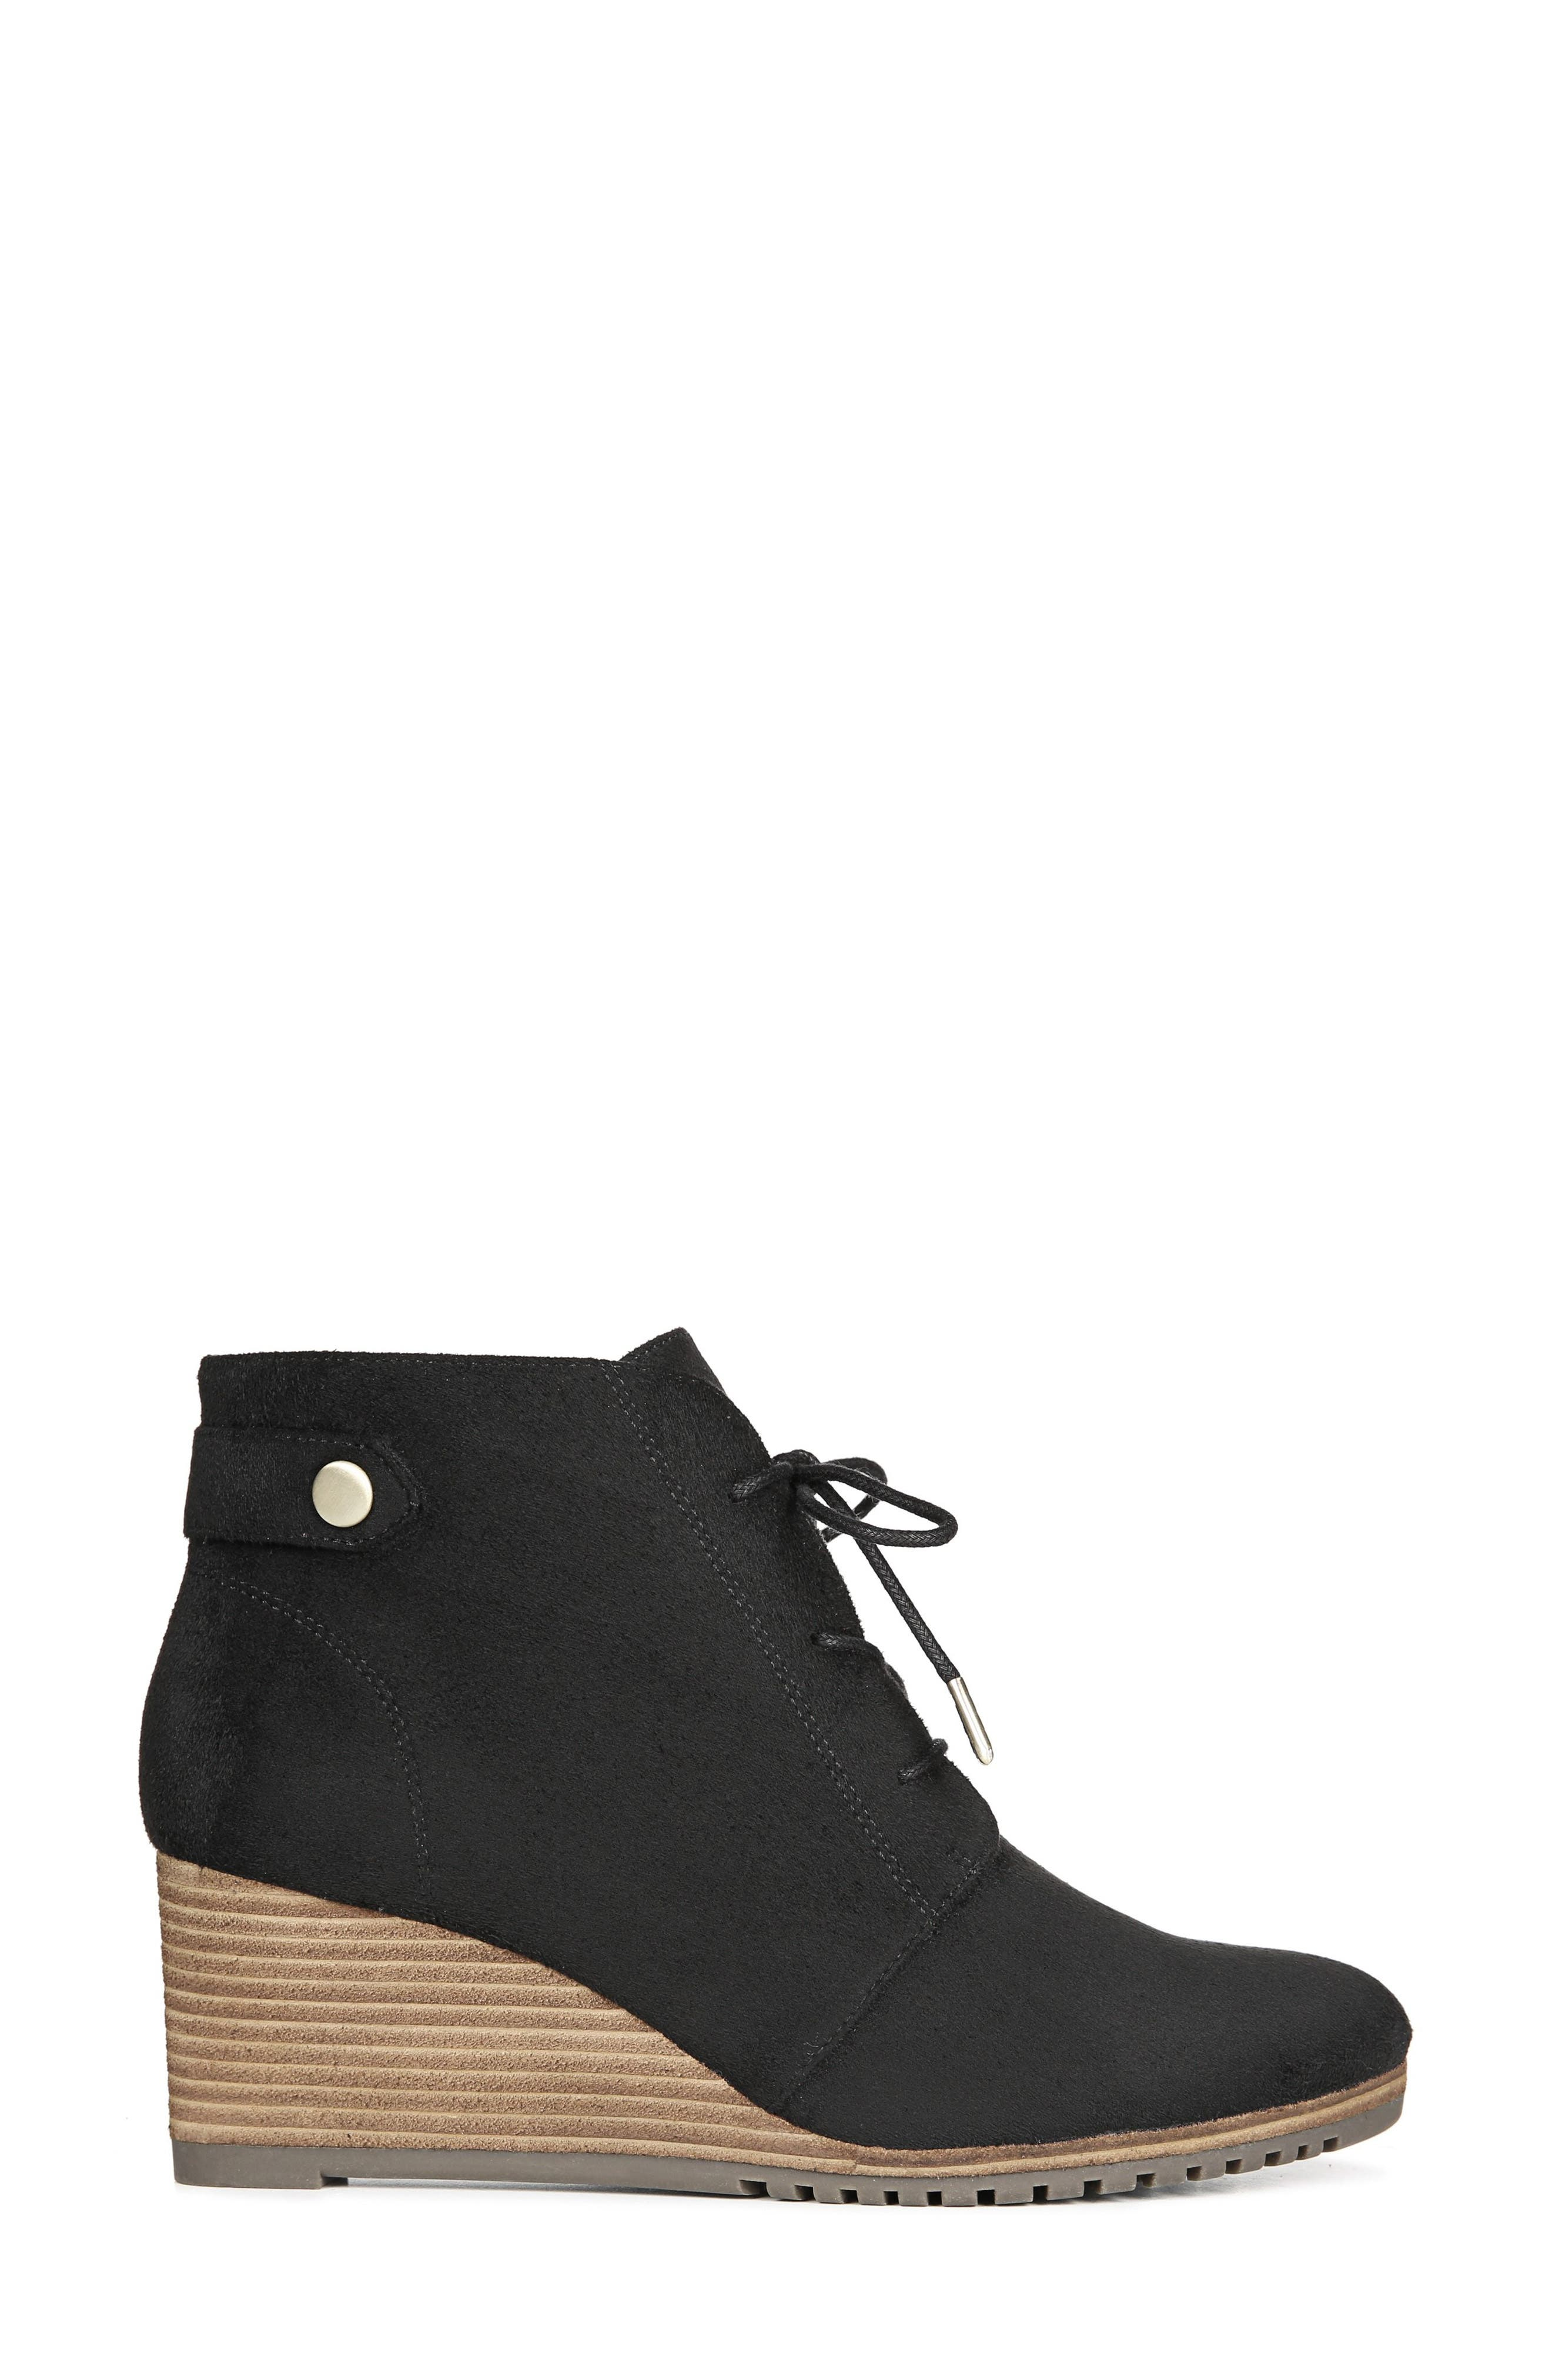 Conquer Wedge Bootie,                             Alternate thumbnail 2, color,                             BLACK FABRIC